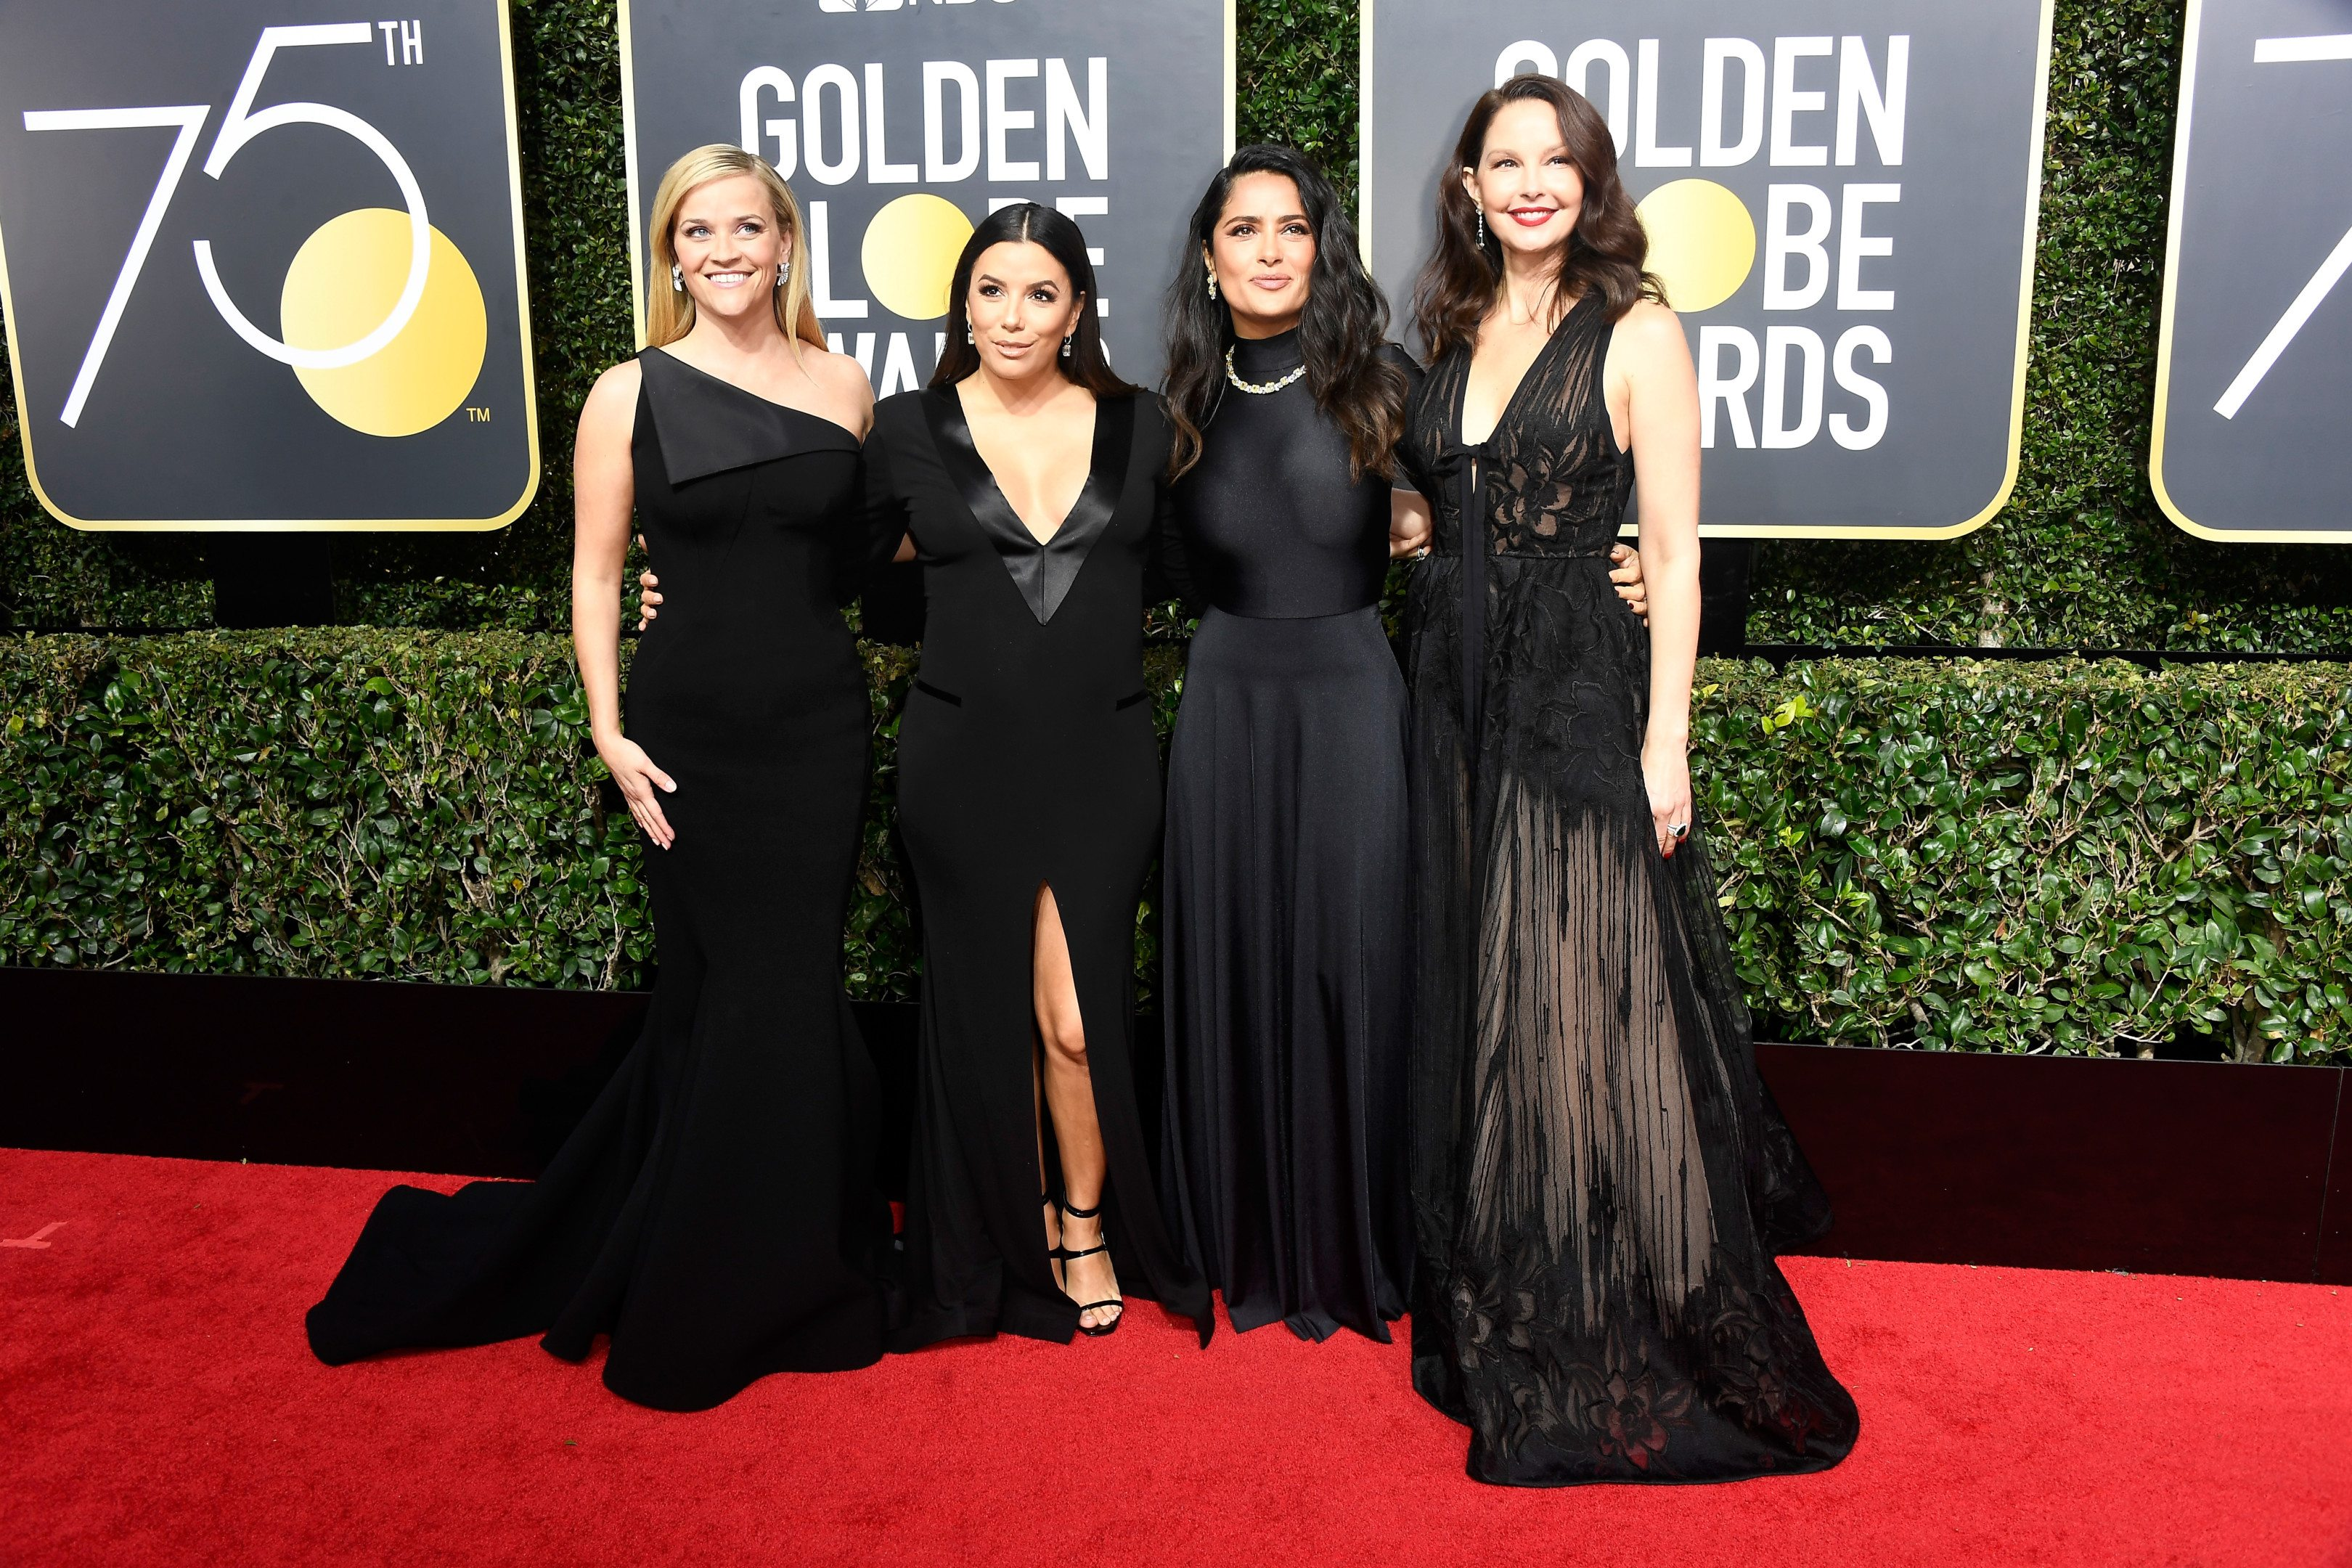 Golden-Globes-2018-fashion-11.jpg